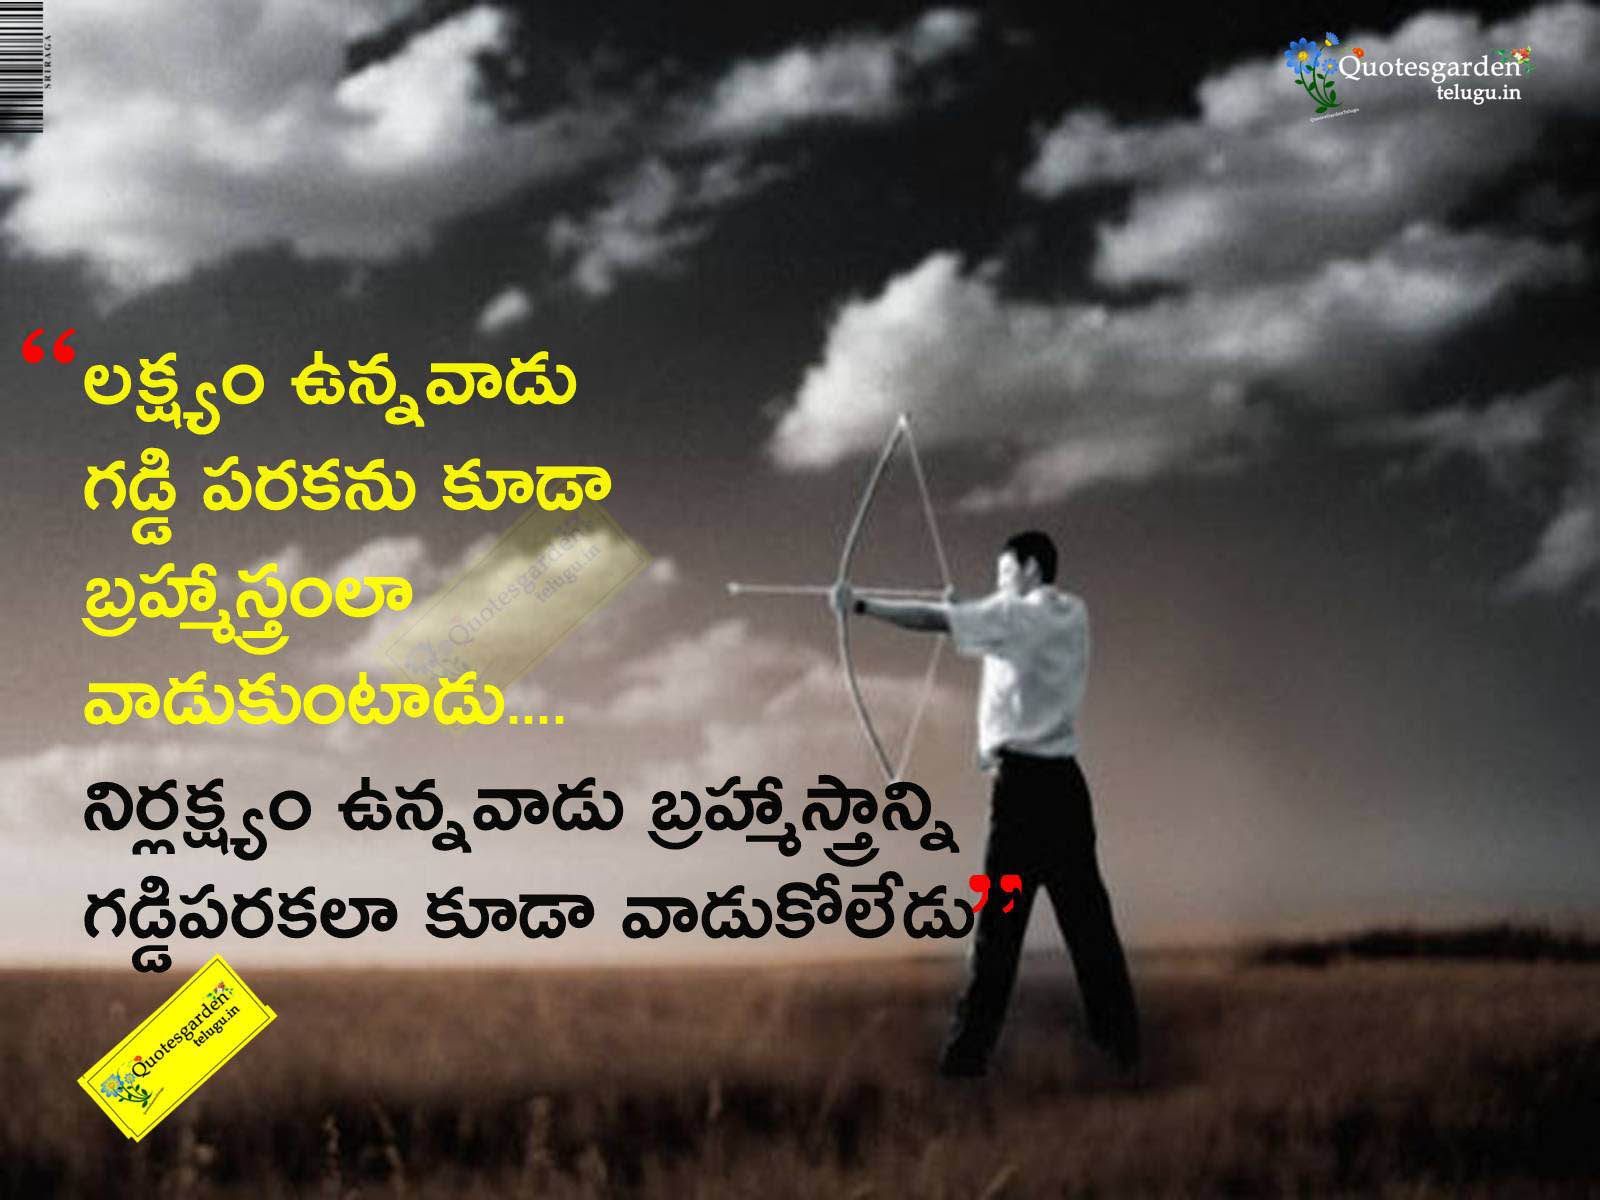 Telugu Comedy Wallpapers With Quotes: Heart Touching Telugu Quotes With Hd Wallpapers